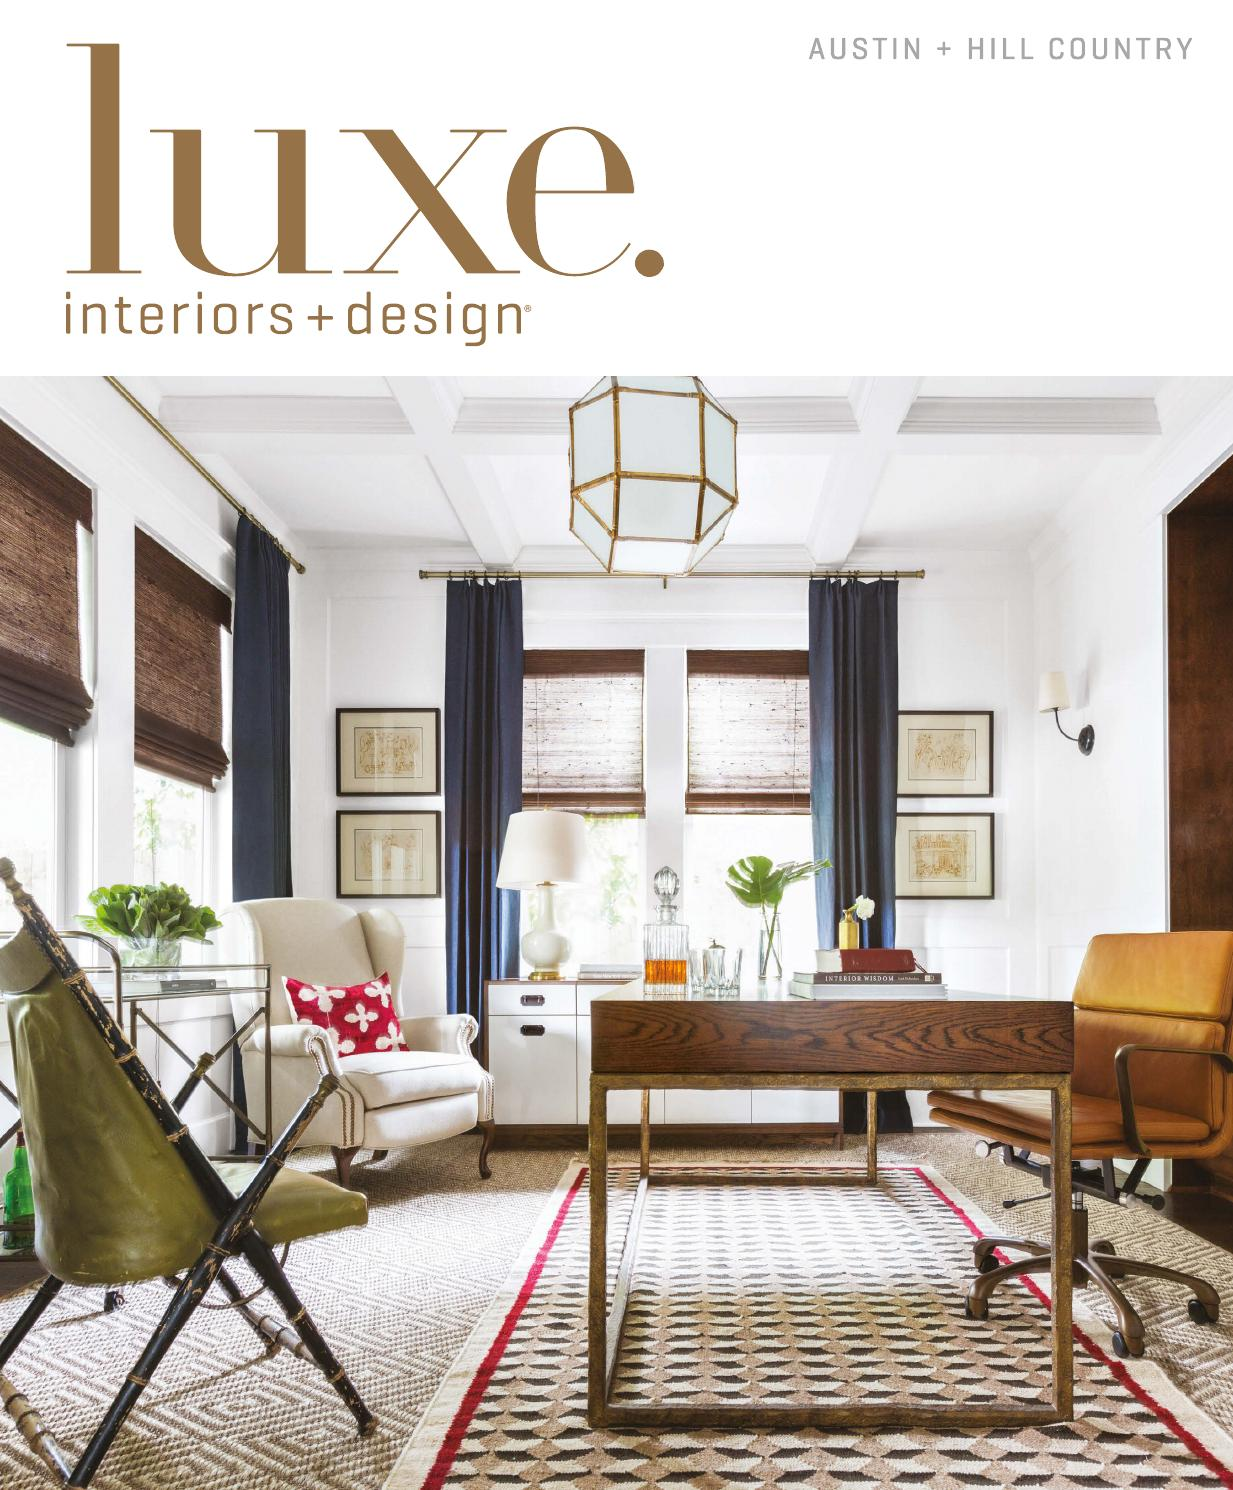 86 Interior Design Assistant Austin Dawn Hearn Has Been Designing Clients Homes Since